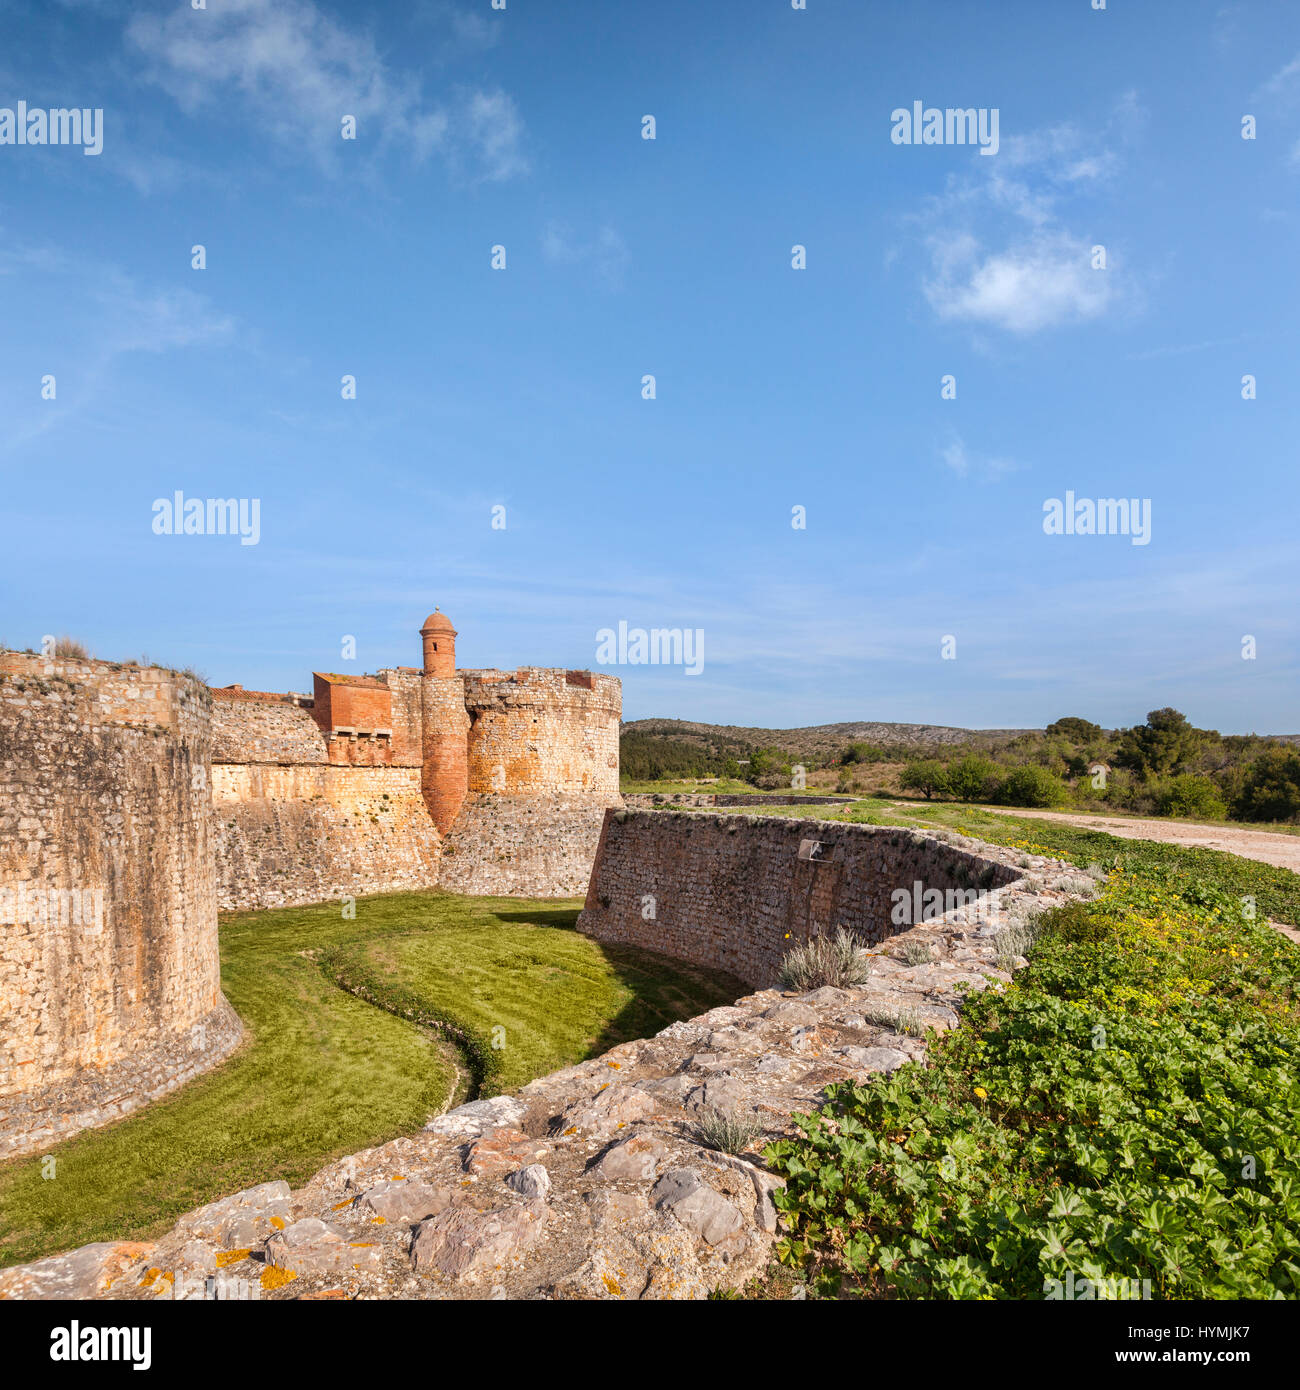 Fortress at Salses-le-Chateau, Languedoc- Rousssillon, Pyrenees Orientales, France. - Stock Image